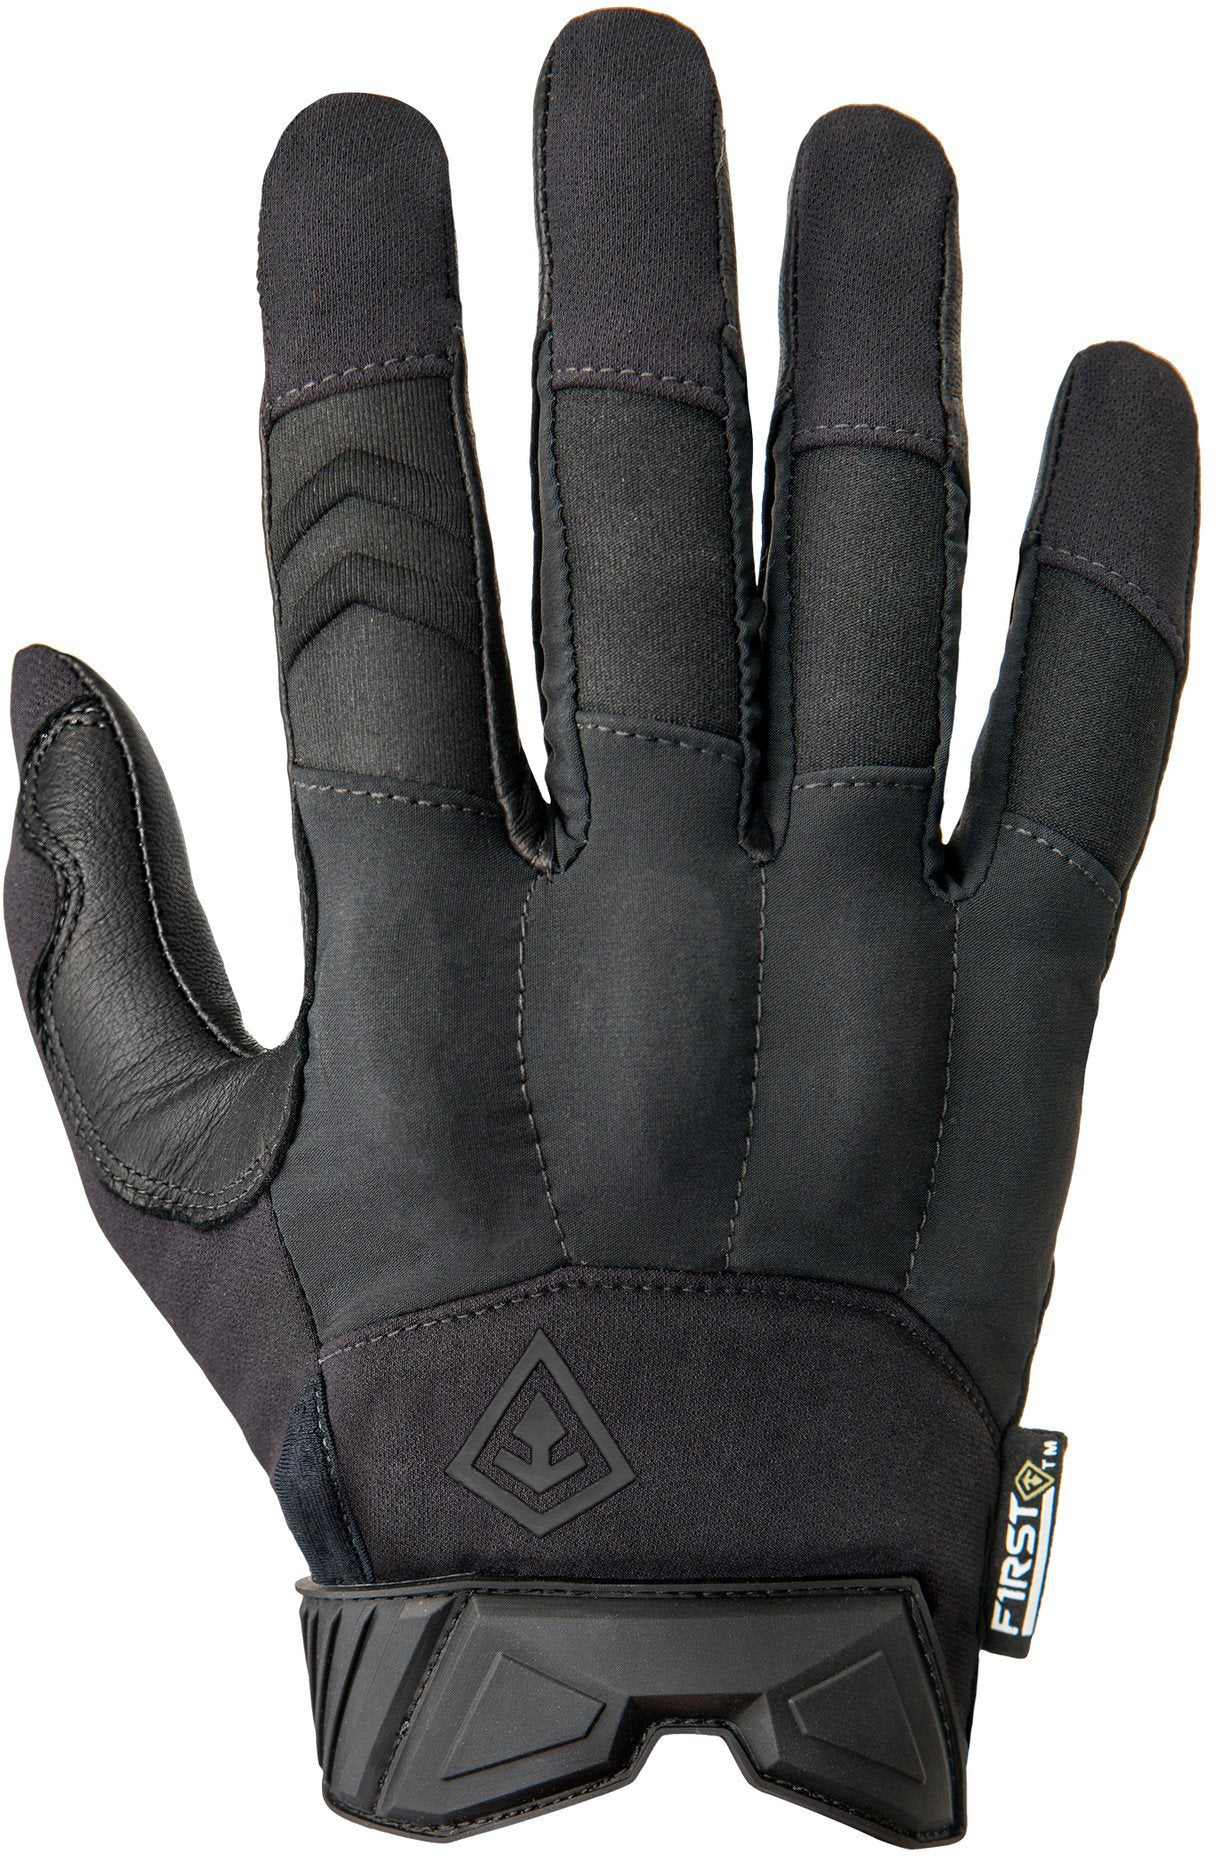 First Tactical - Hard Knuckle - Apparelly Gloves